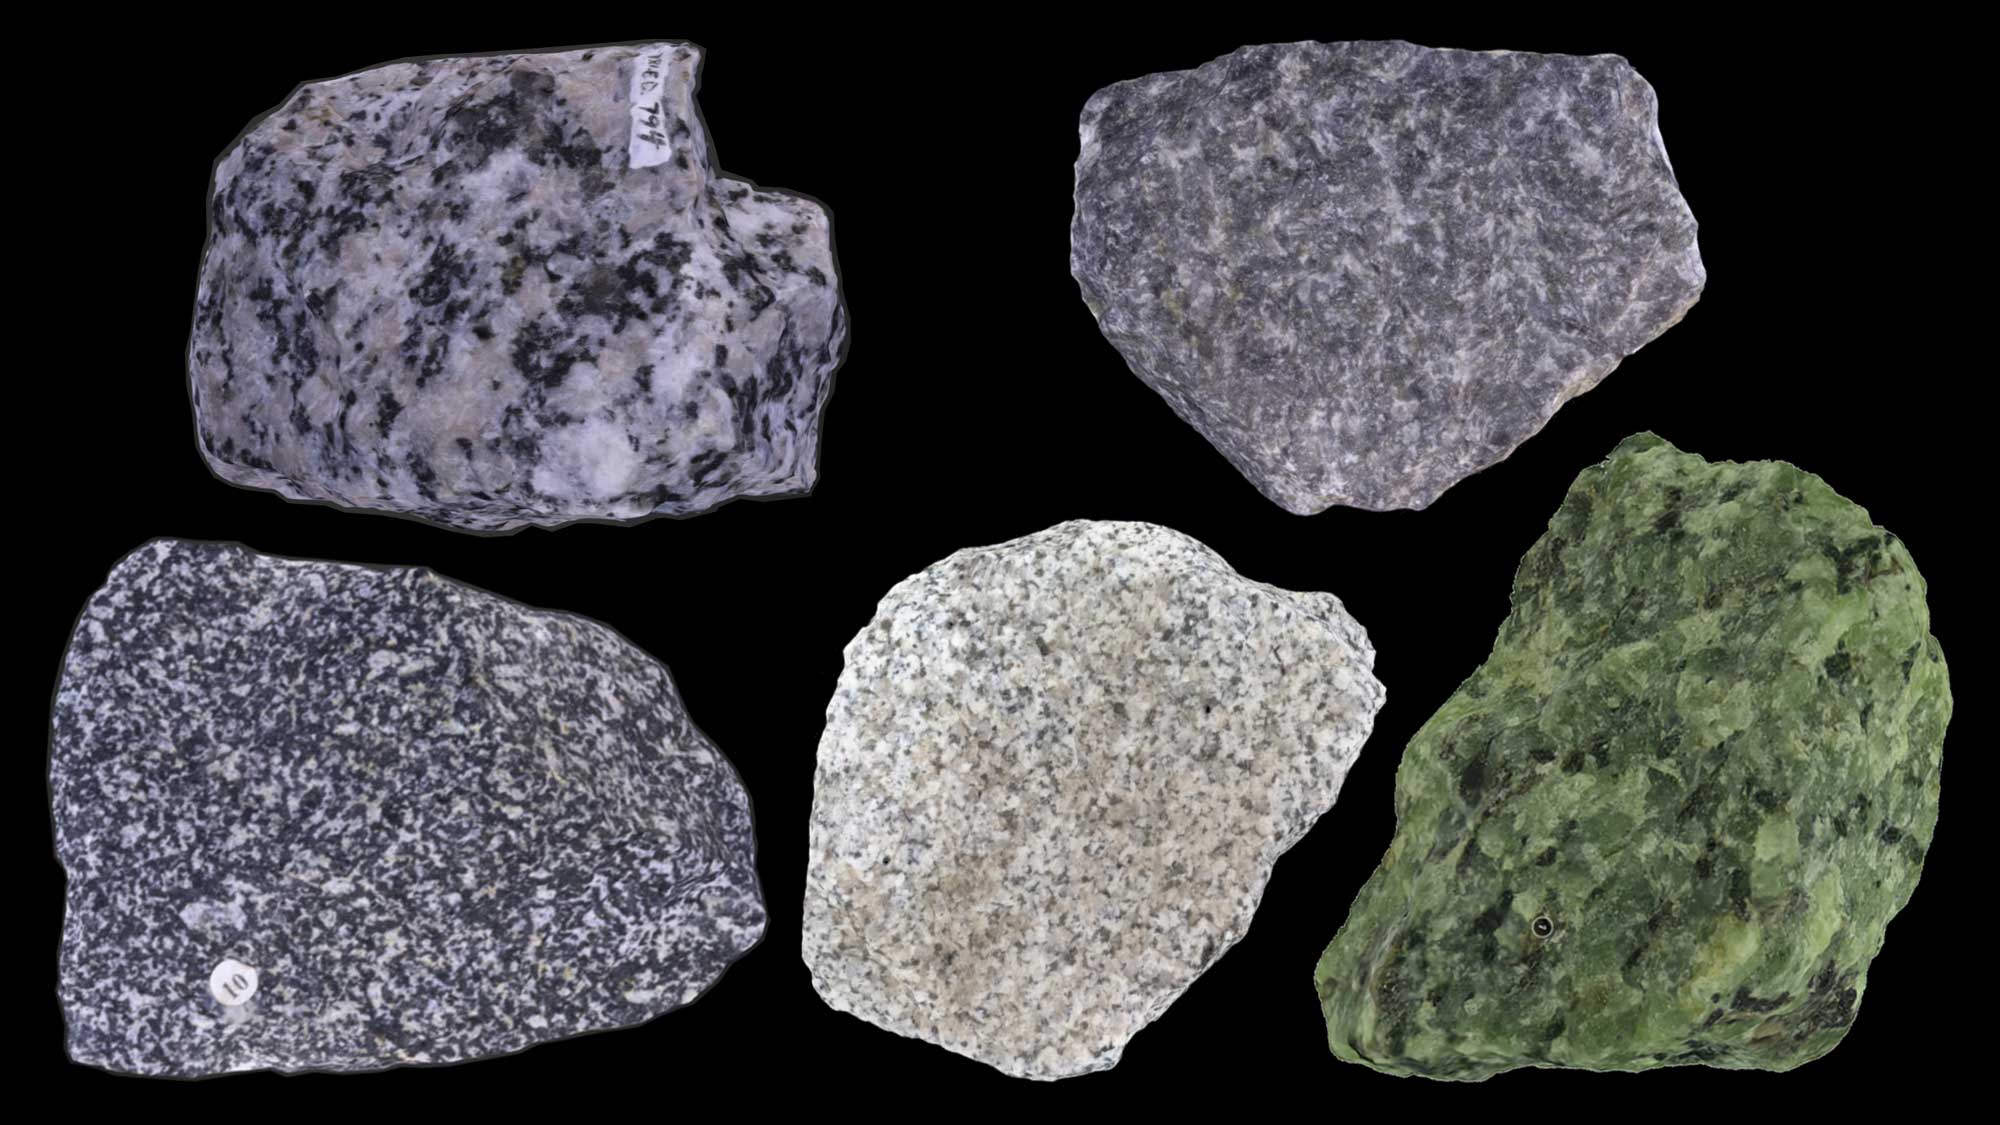 Image of various types of intrusive igneous rocks.